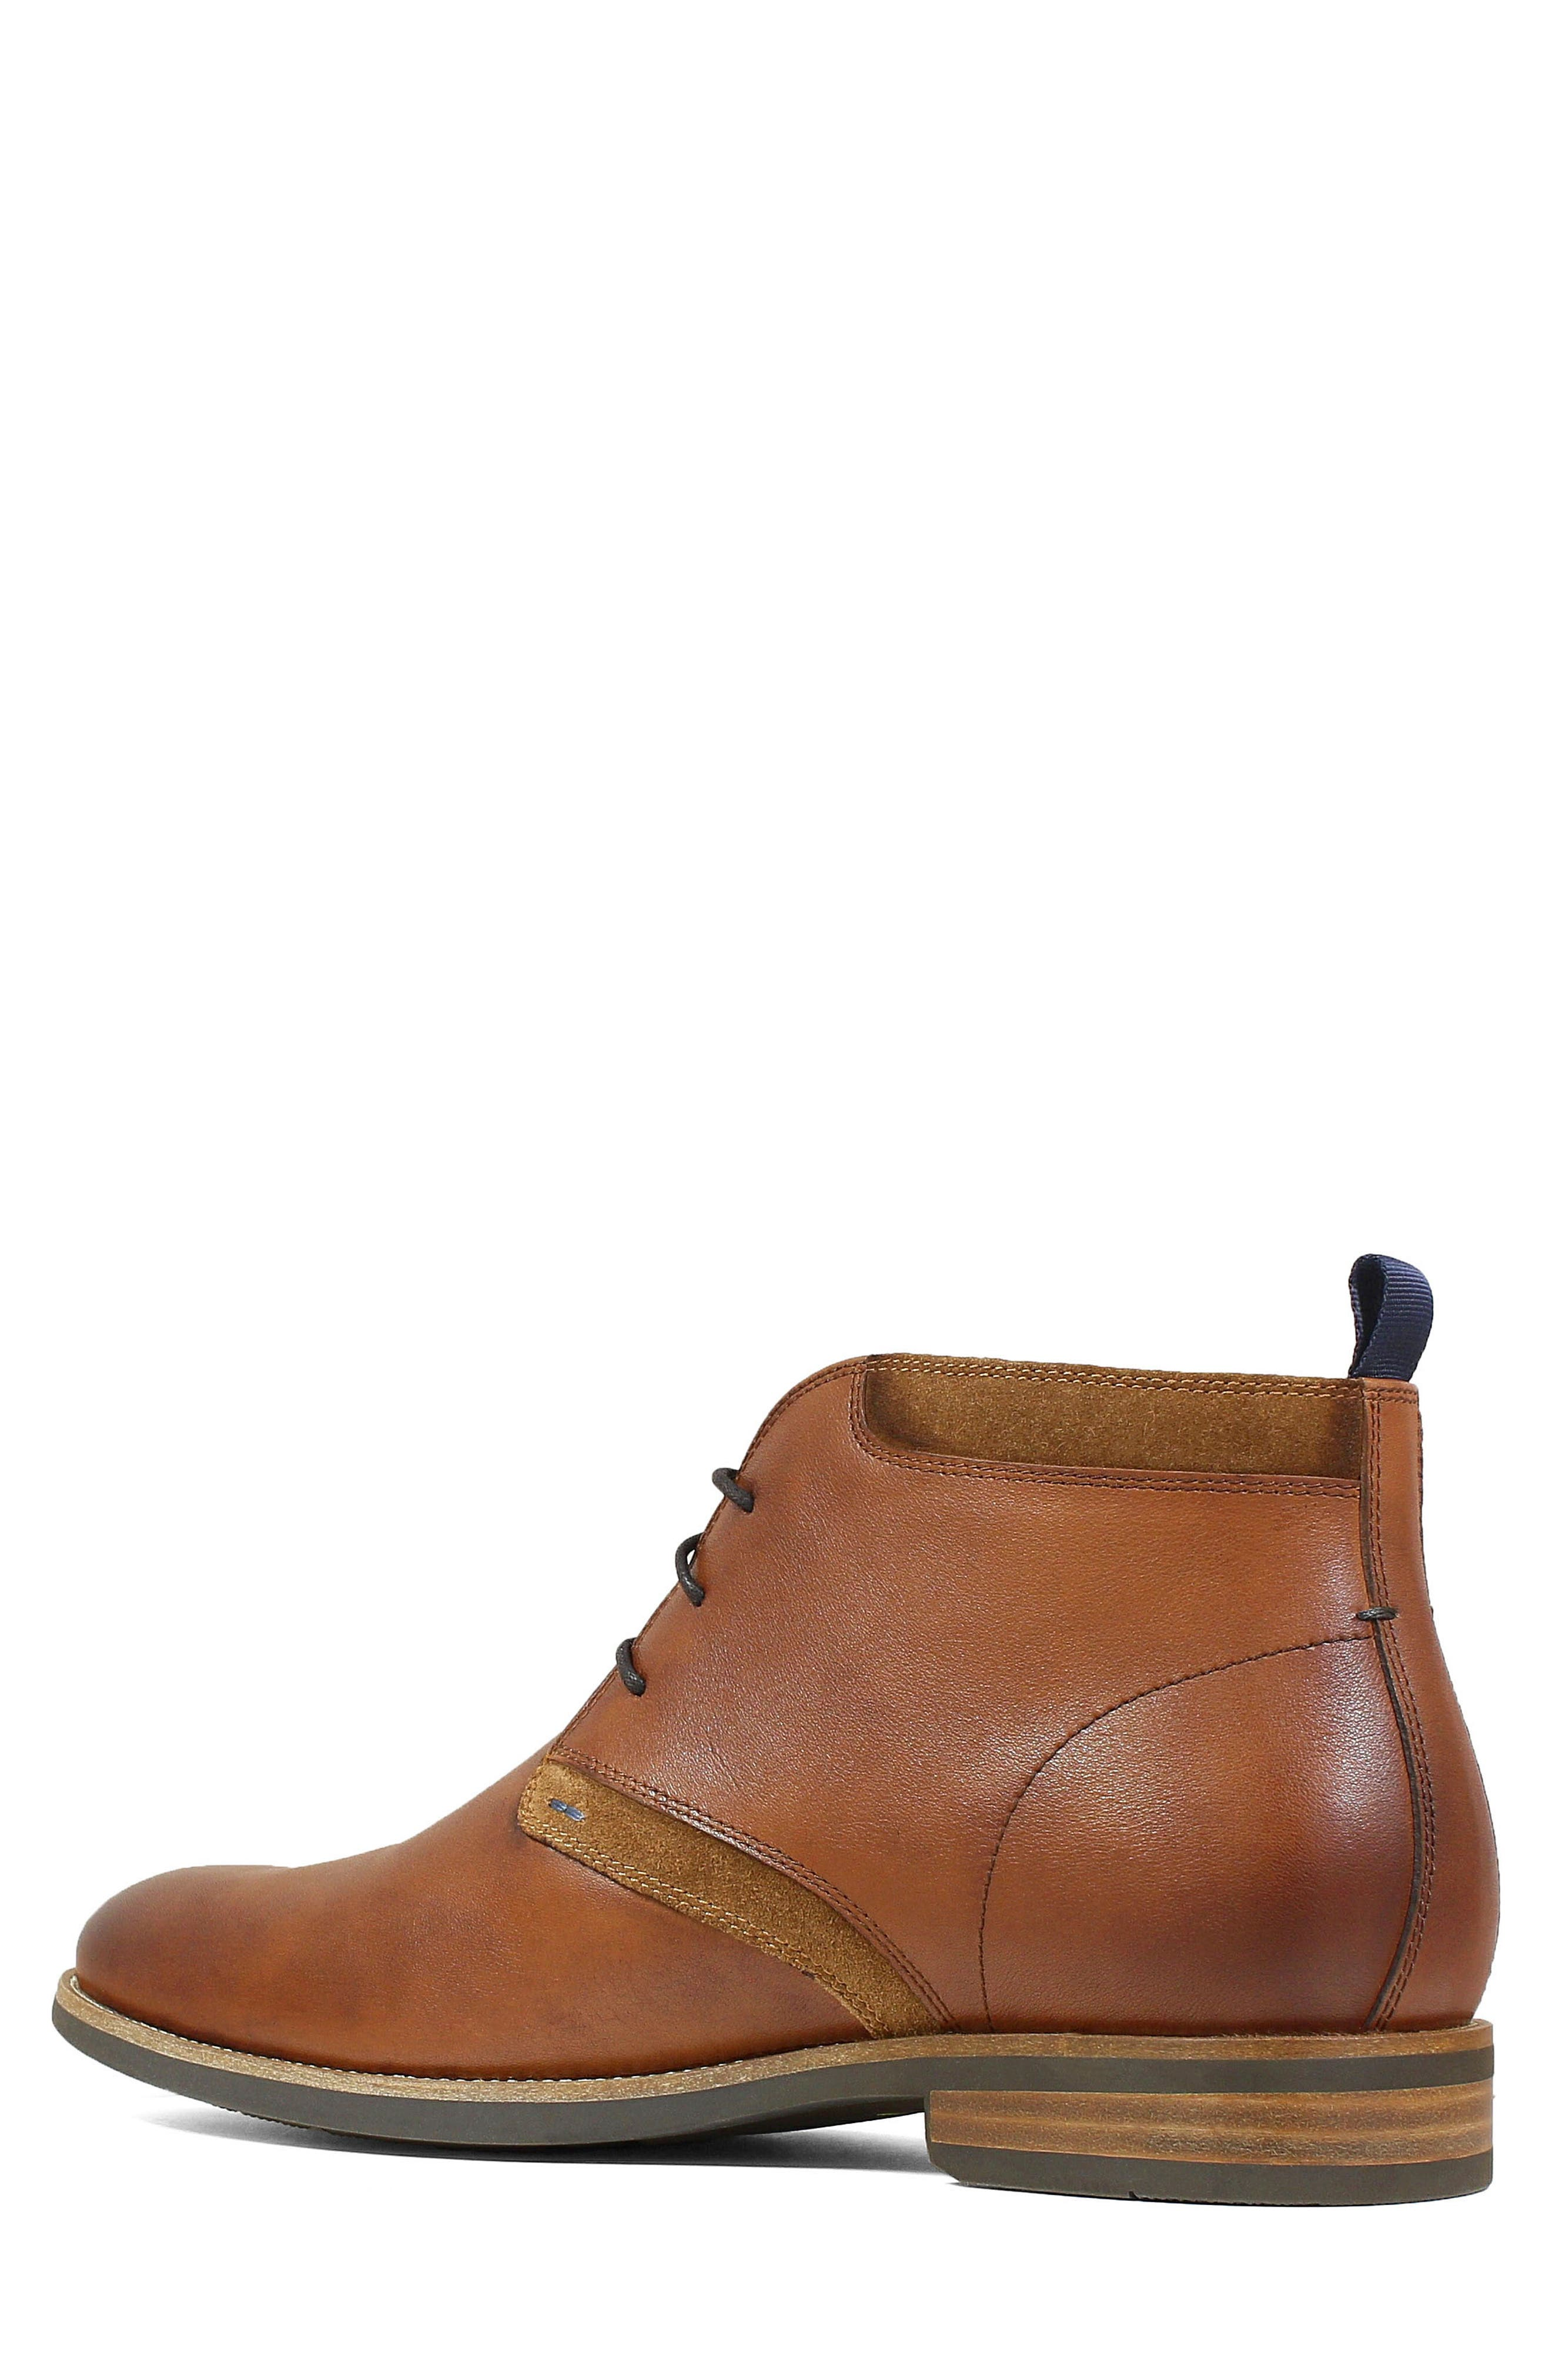 Uptown Chukka Boot,                             Alternate thumbnail 2, color,                             COGNAC LEATHER